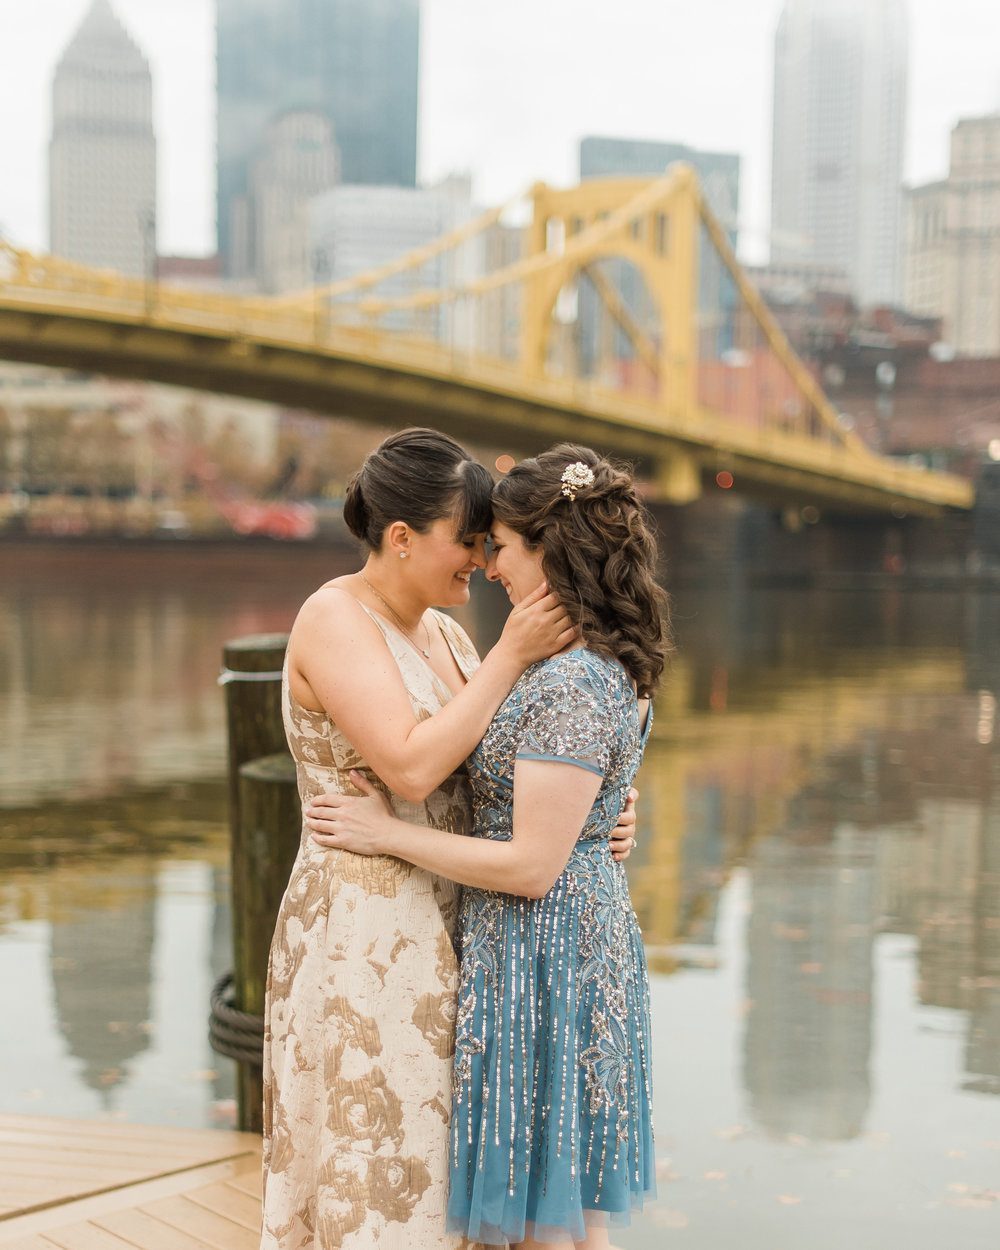 pittsburgh-wedding-photographer-lgbtqfriendly-samesex-city0009.jpg